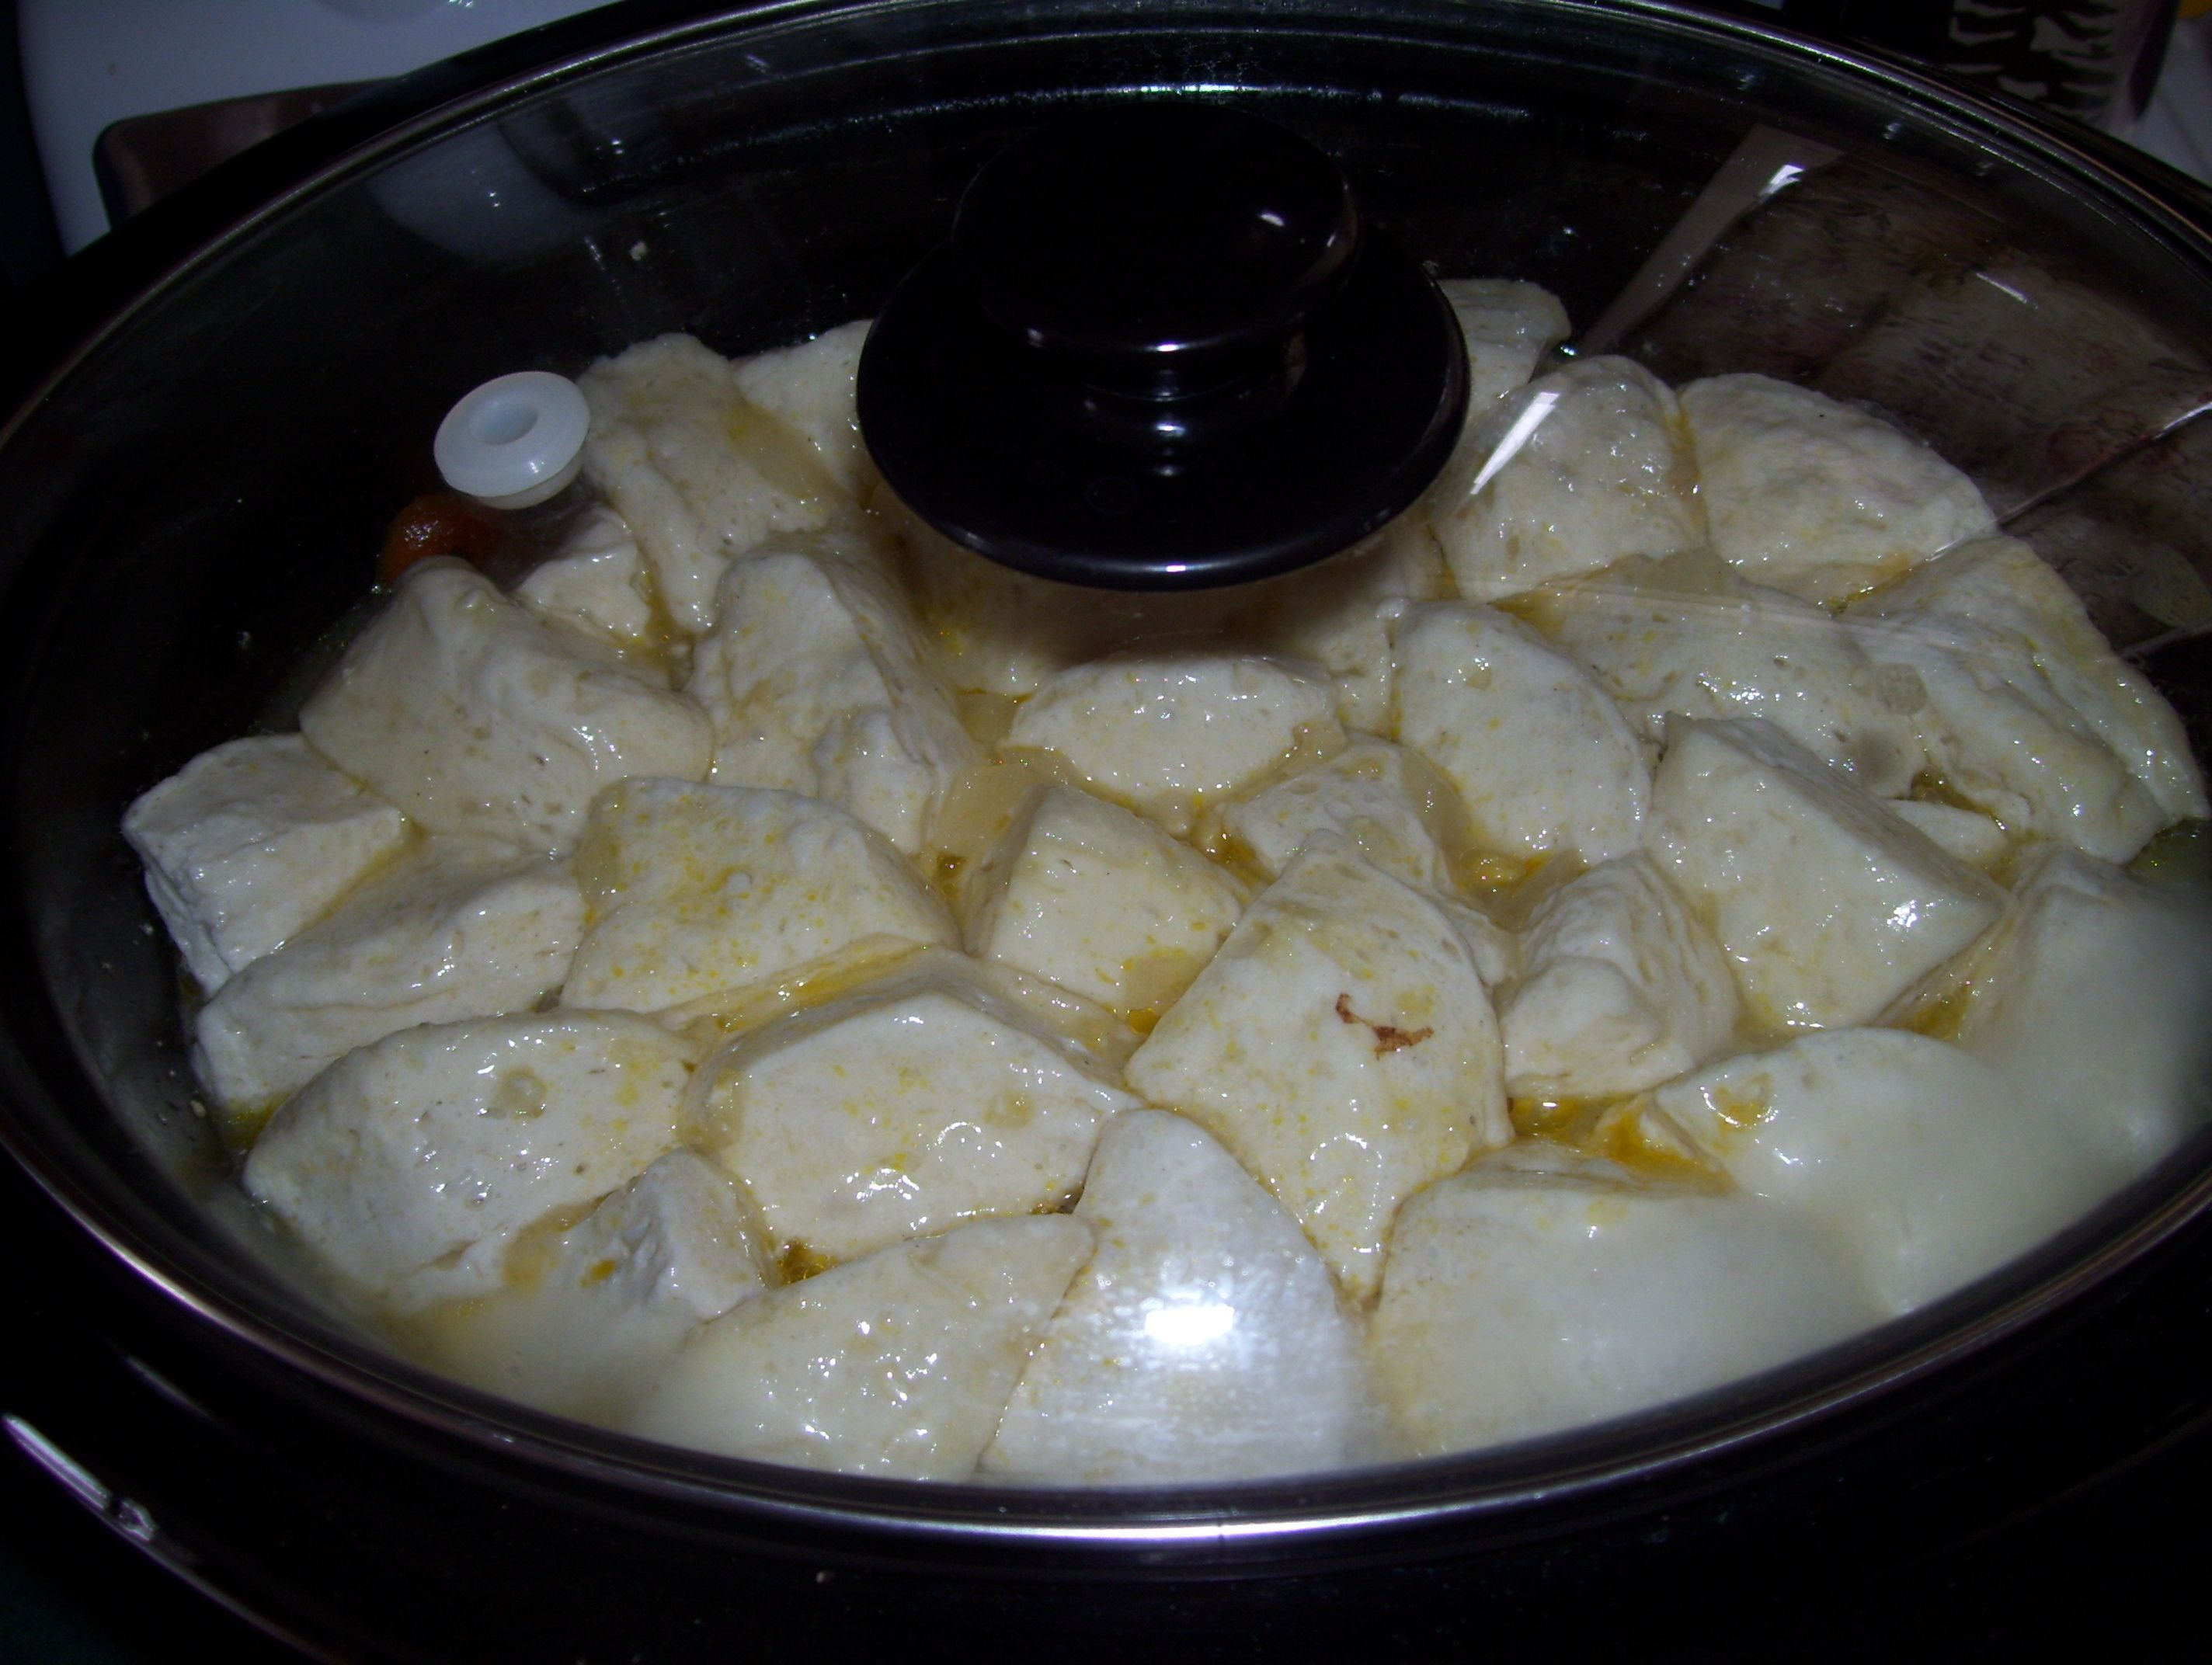 Crock Pot Chicken Dumpling Soup #chickendumplingscrockpot Crock Pot Chicken Dumpling Soup #chickendumplingscrockpot